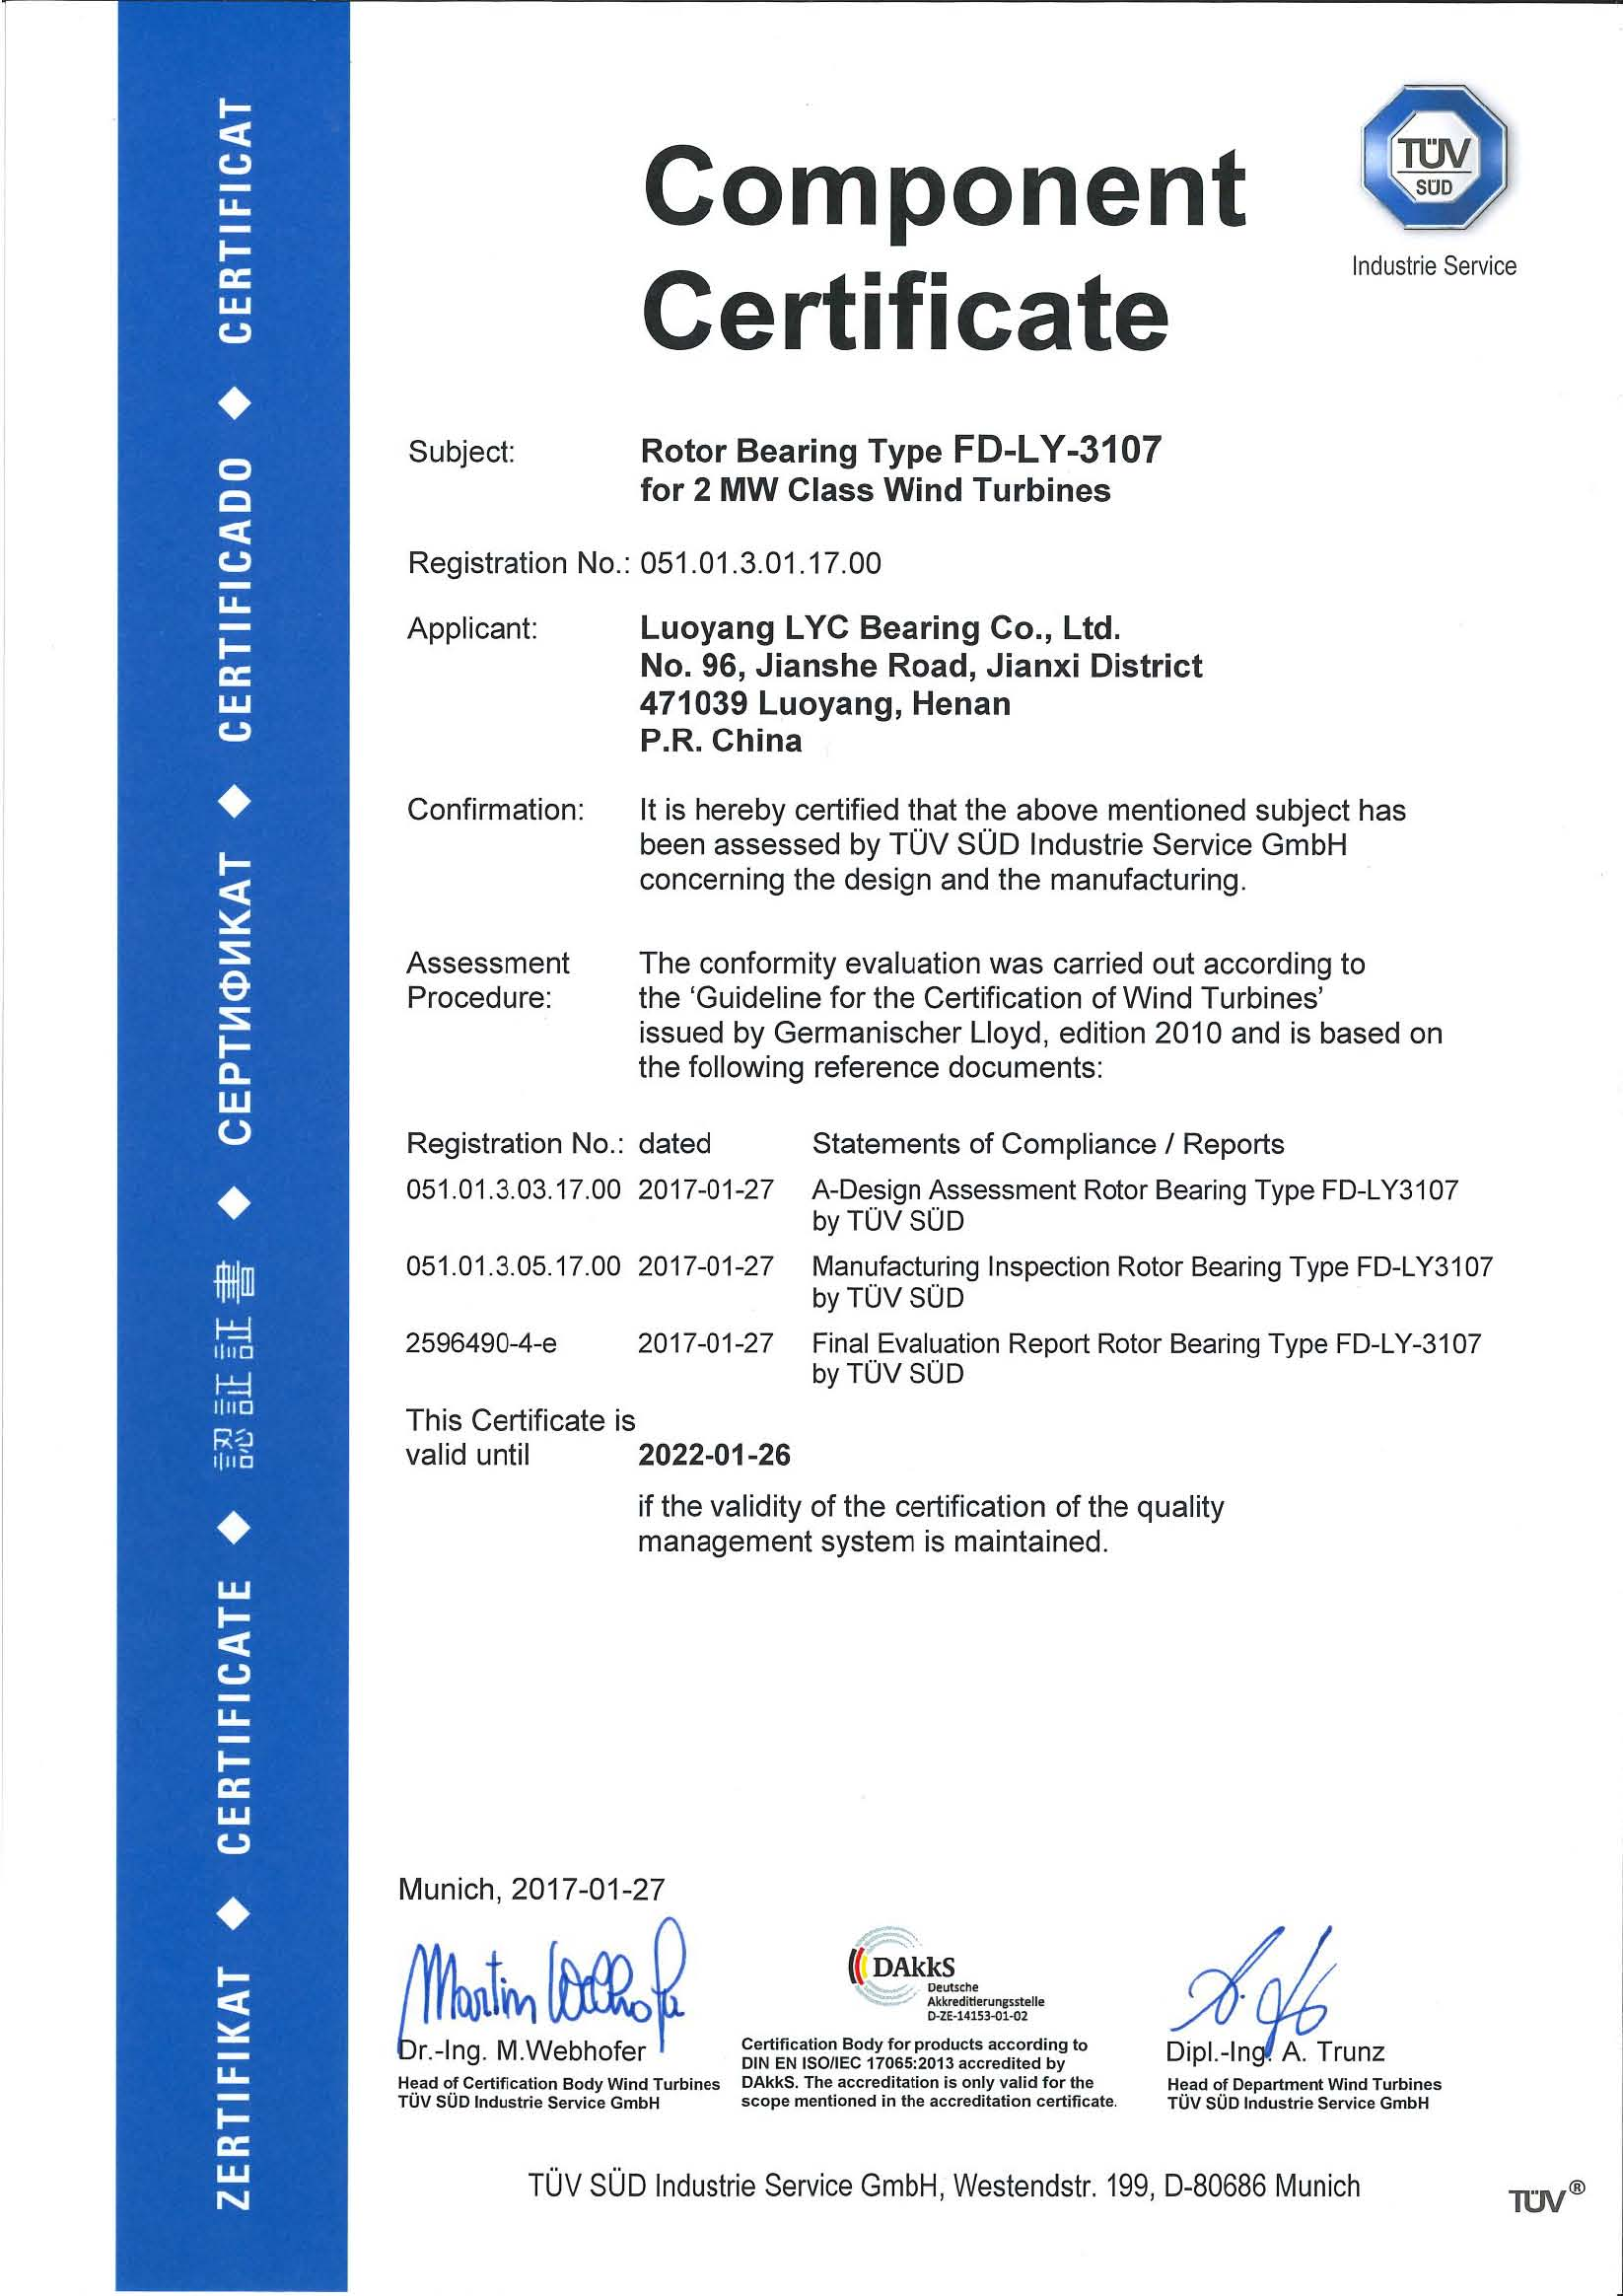 Luoyang LYC Bearing Corp. passed GL Wind power product certification